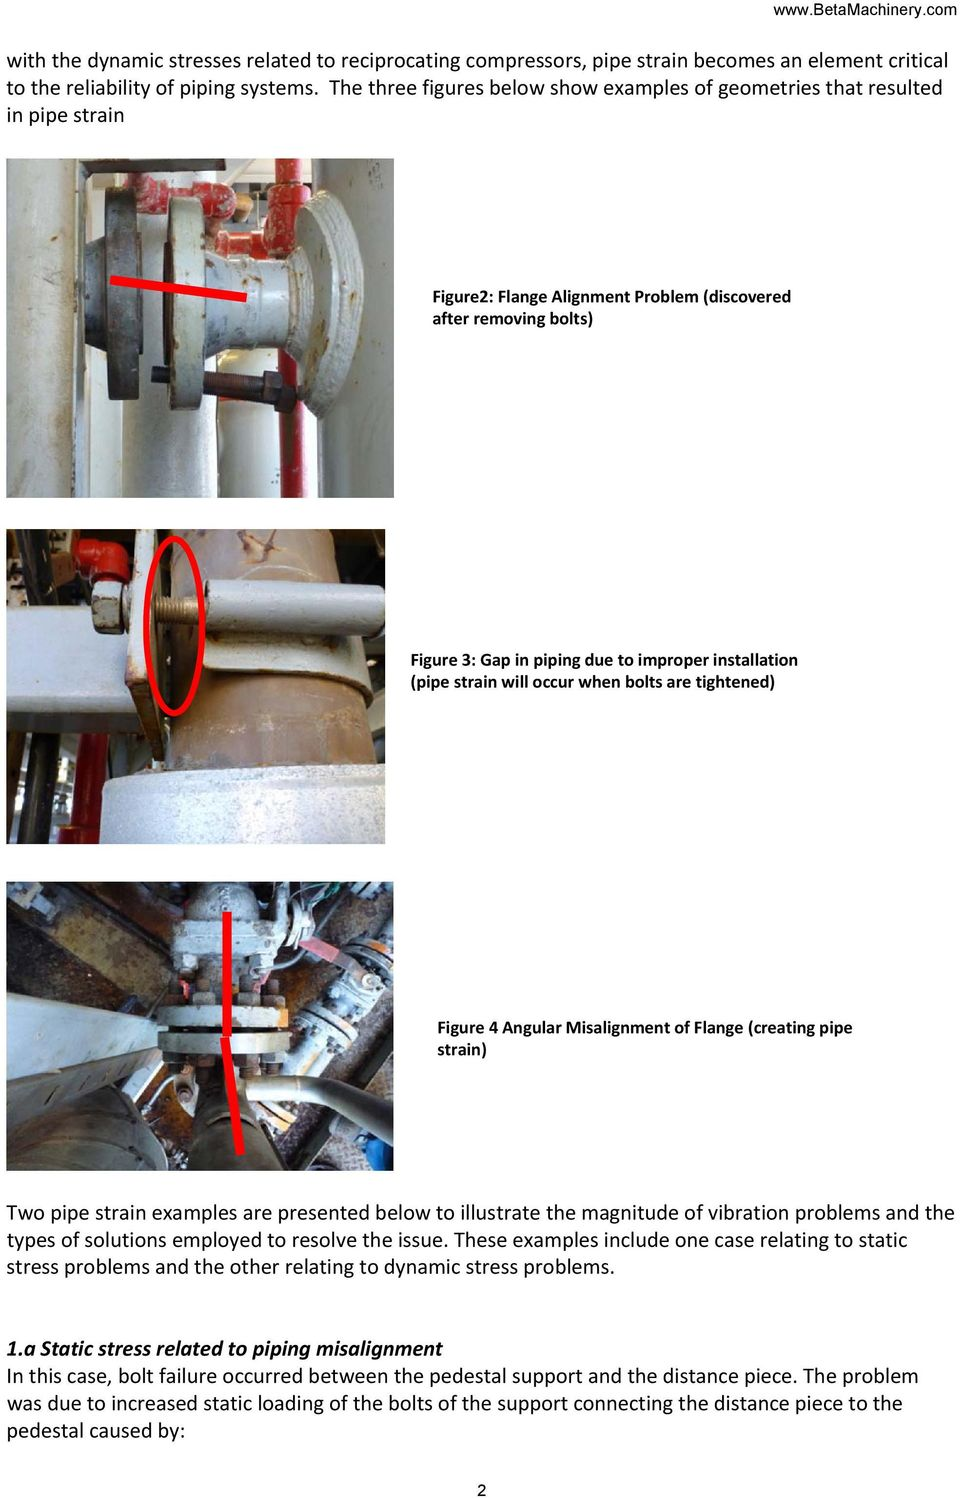 installation (pipe strain will occur when bolts are tightened) Figure 4 Angular Misalignment of Flange (creating pipe strain) Two pipe strain examples are presented below to illustrate the magnitude